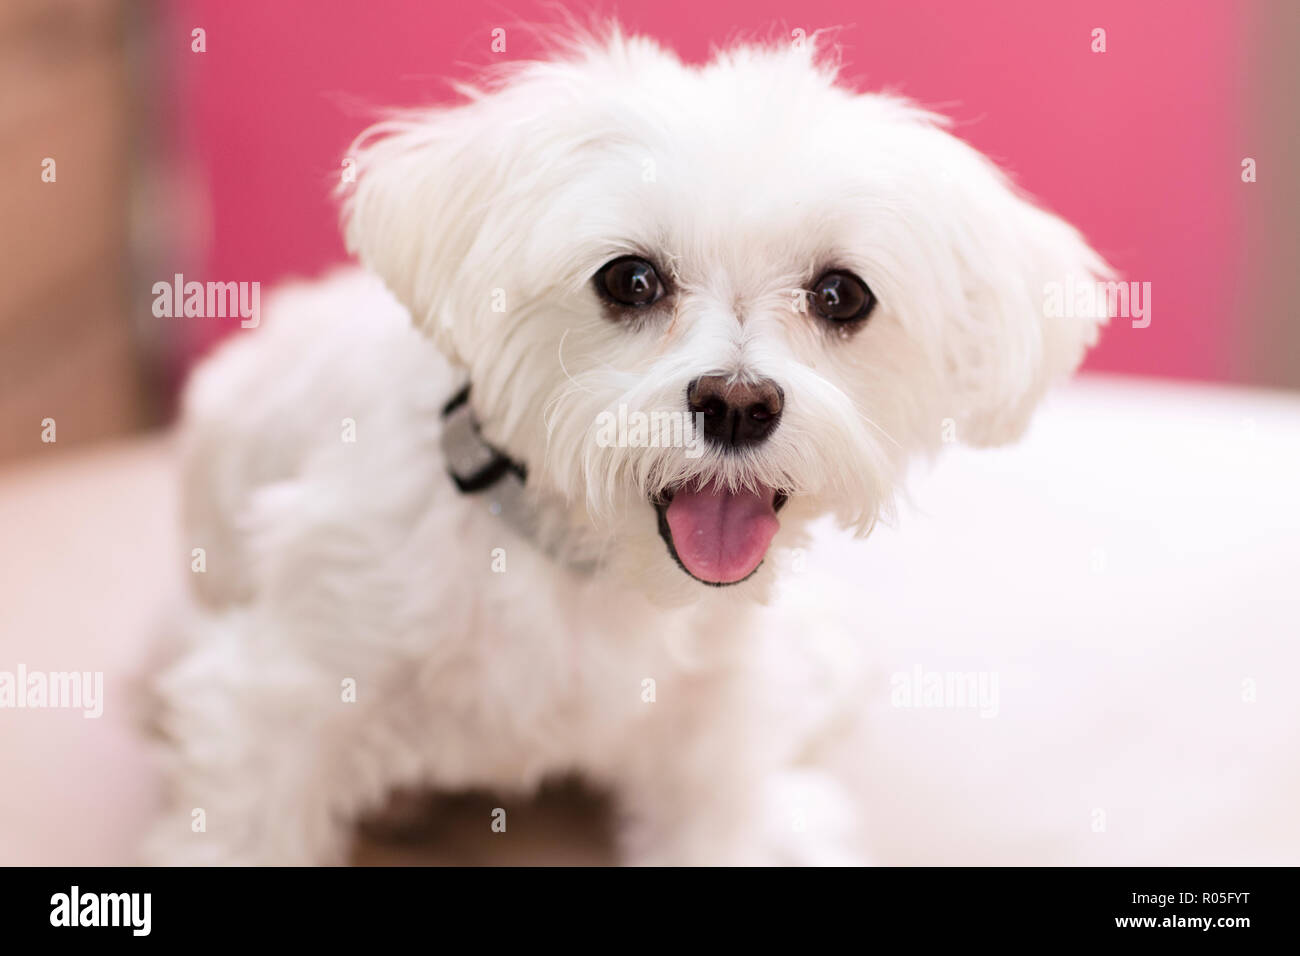 white Maltese puppy with tongue sticking out against a pink backdrop - Stock Image